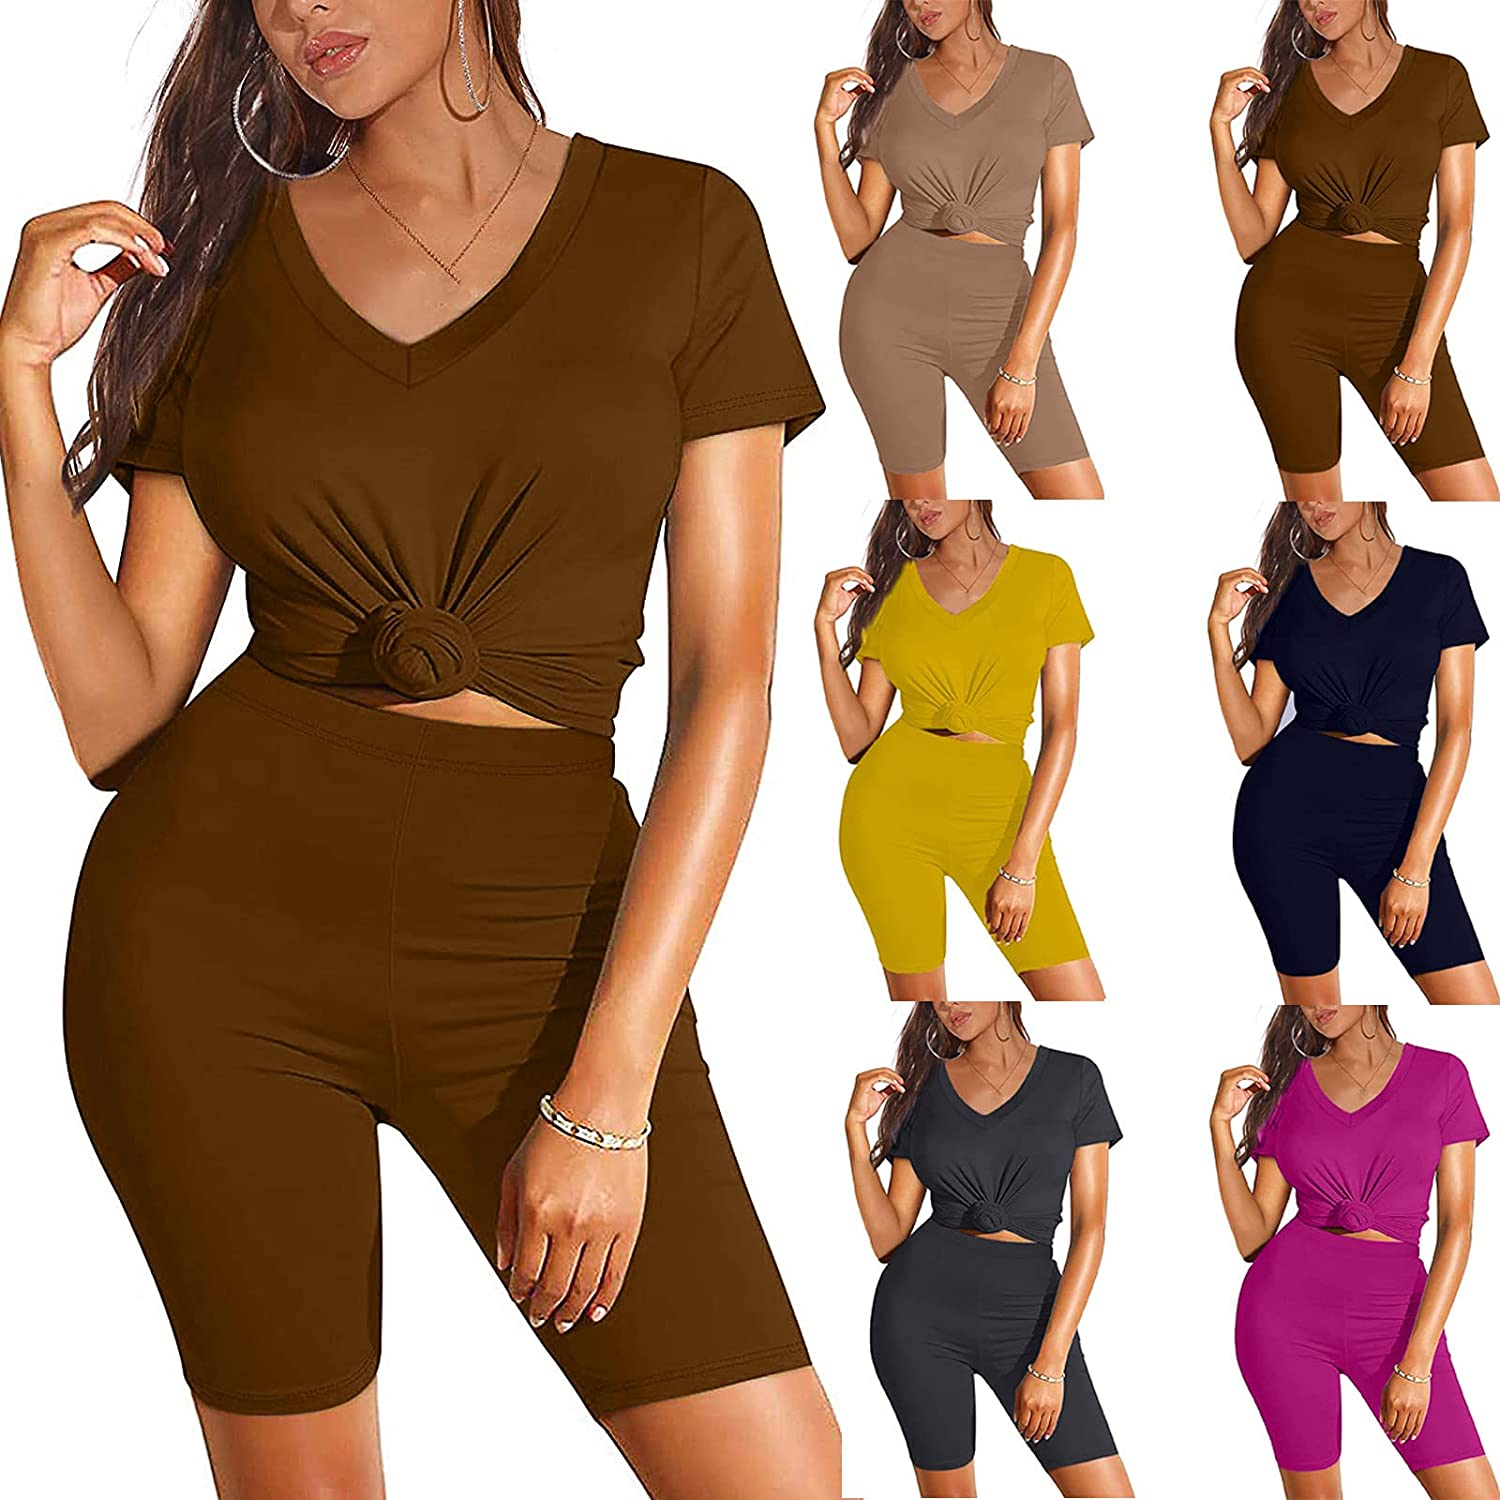 Two Piece Outfits for Women Short Sleeve V Neck Biker Shorts Set Gradual Yoga Outfit Top And Pants Set